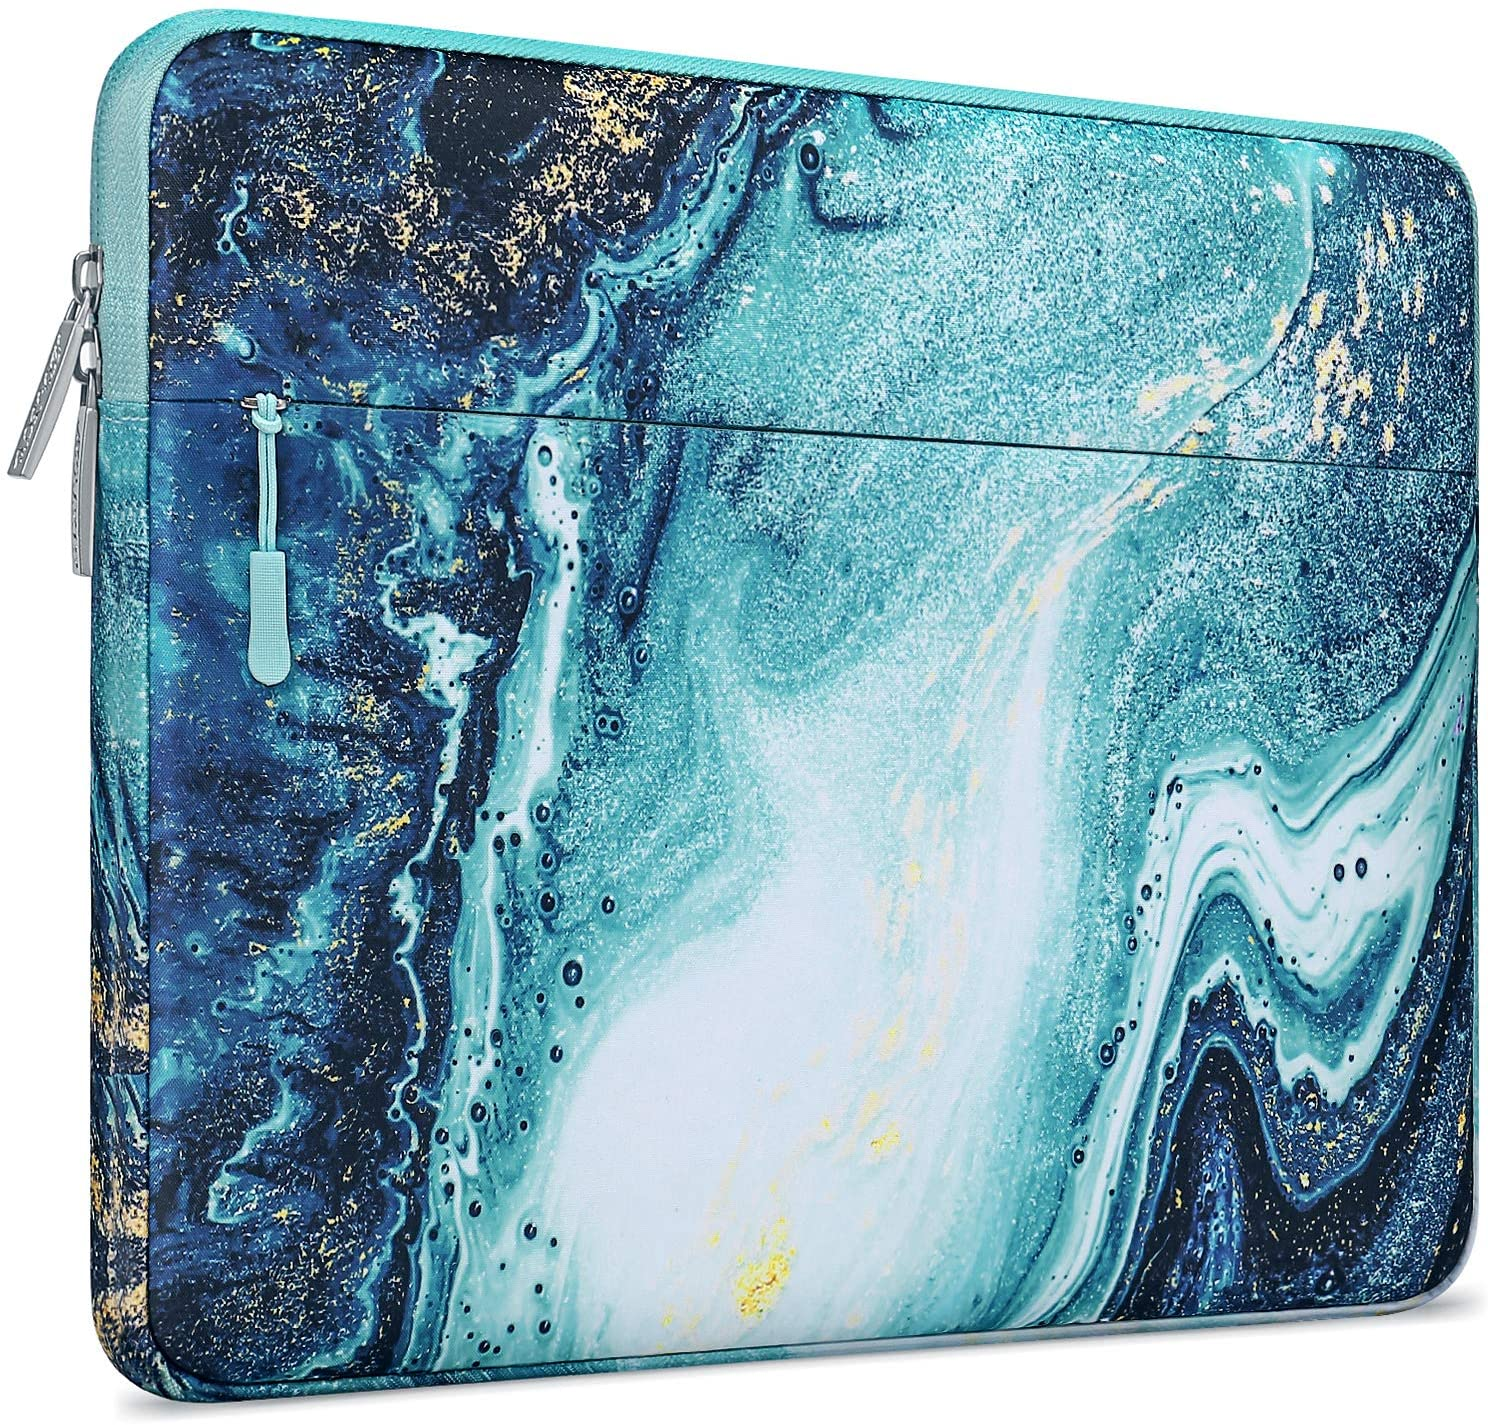 MOSISO Laptop Sleeve Compatible with 13-13.3 inch MacBook Pro, MacBook Air, Notebook Computer, Polyester Horizontal Creative Wave Marble Bag